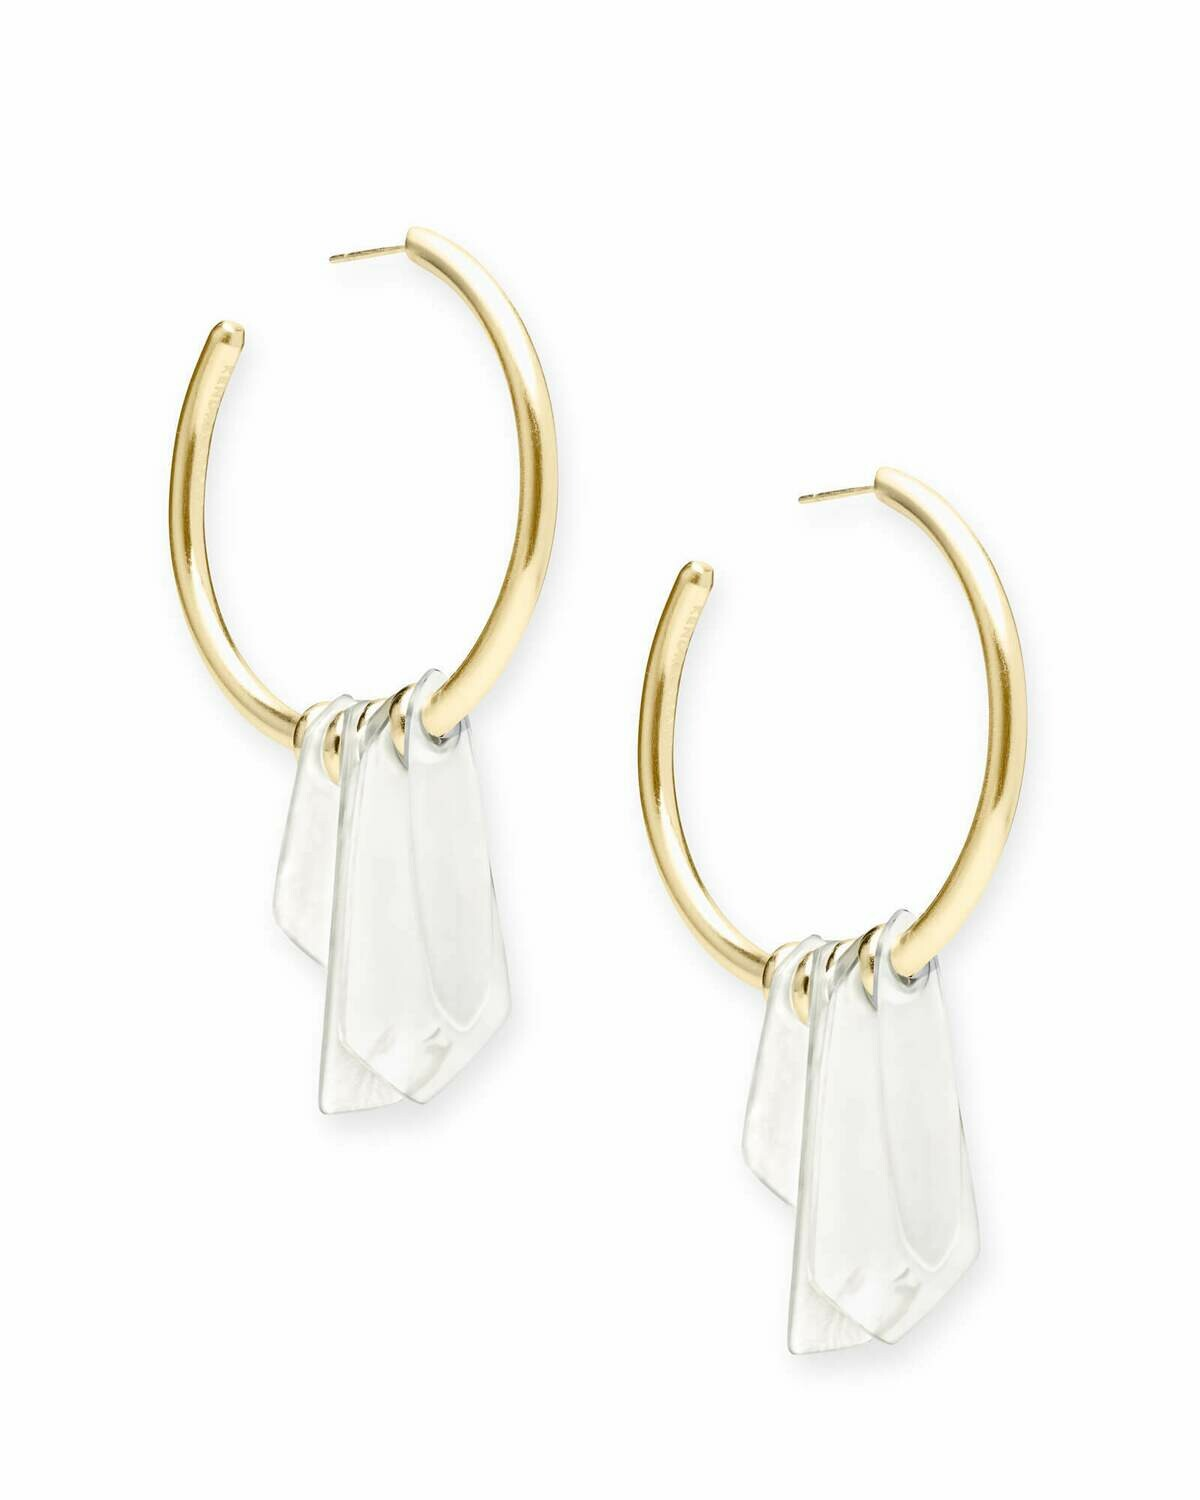 Kendra Scott Gaby Statement Earrings in Gold